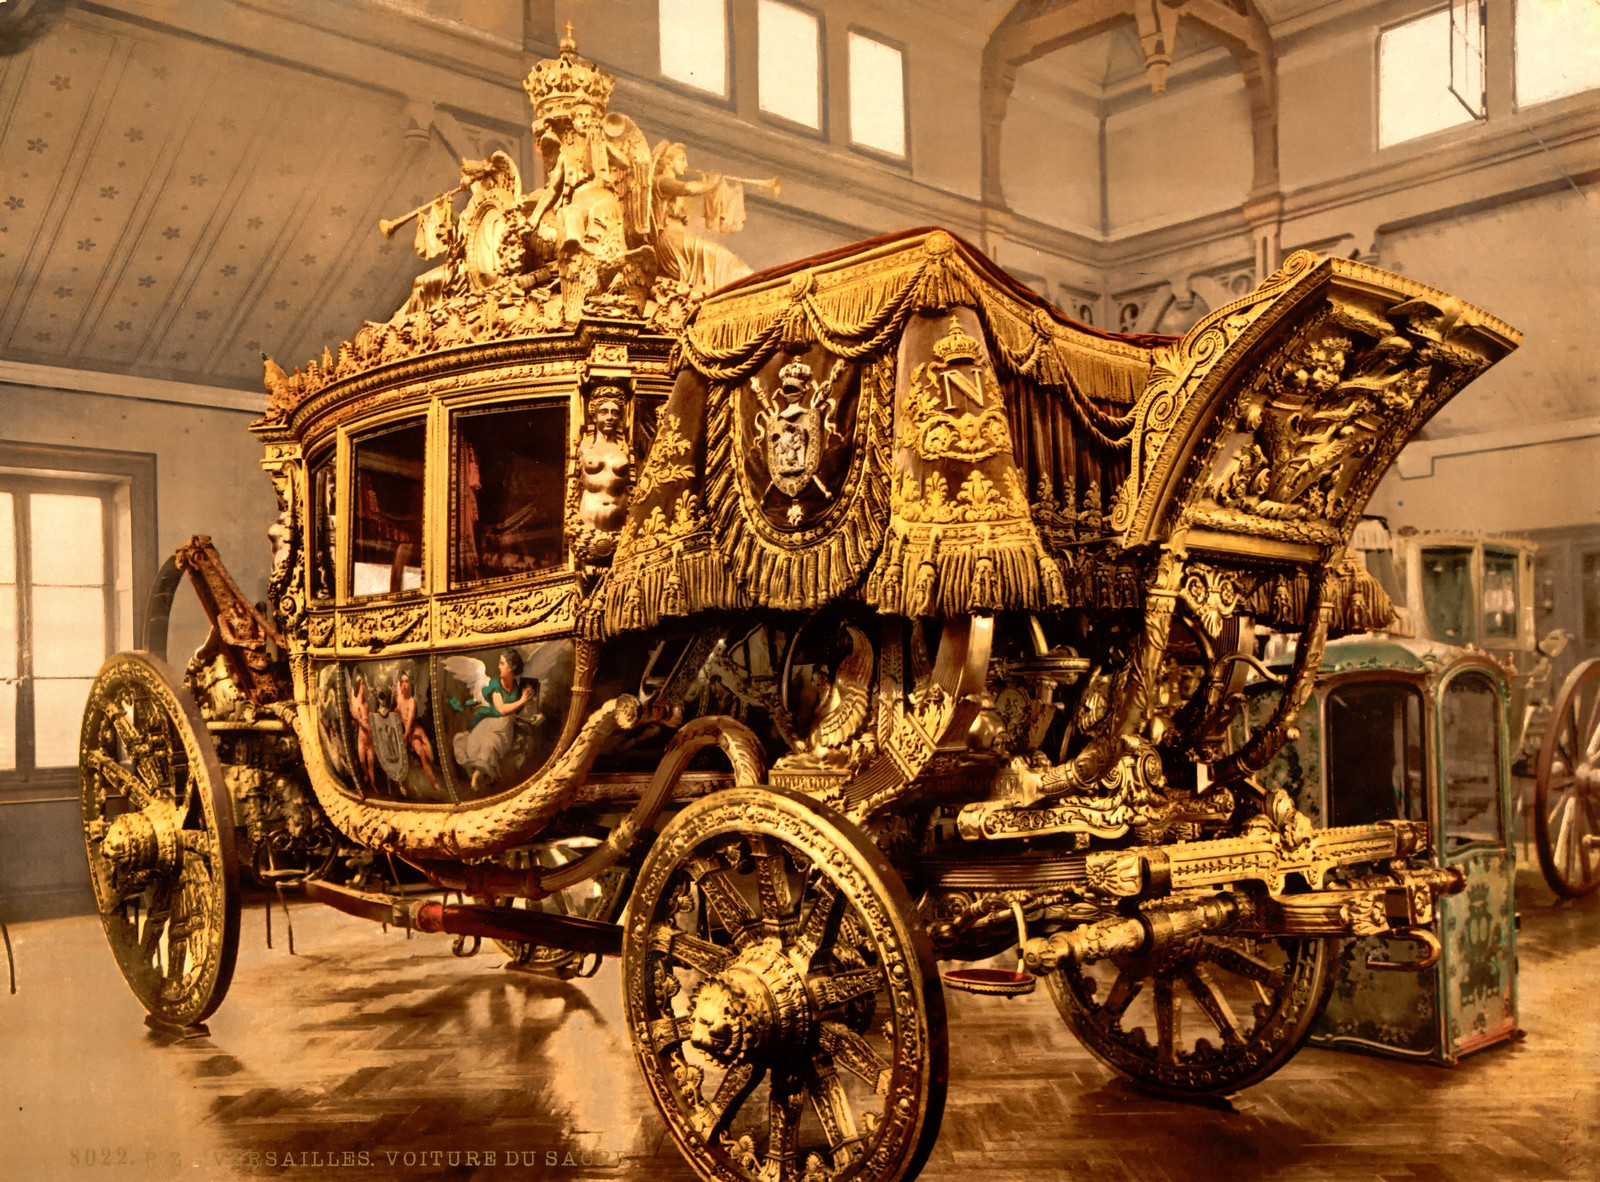 Charles X of France (1824 - 1830), carriage, Versailles, France, 1895